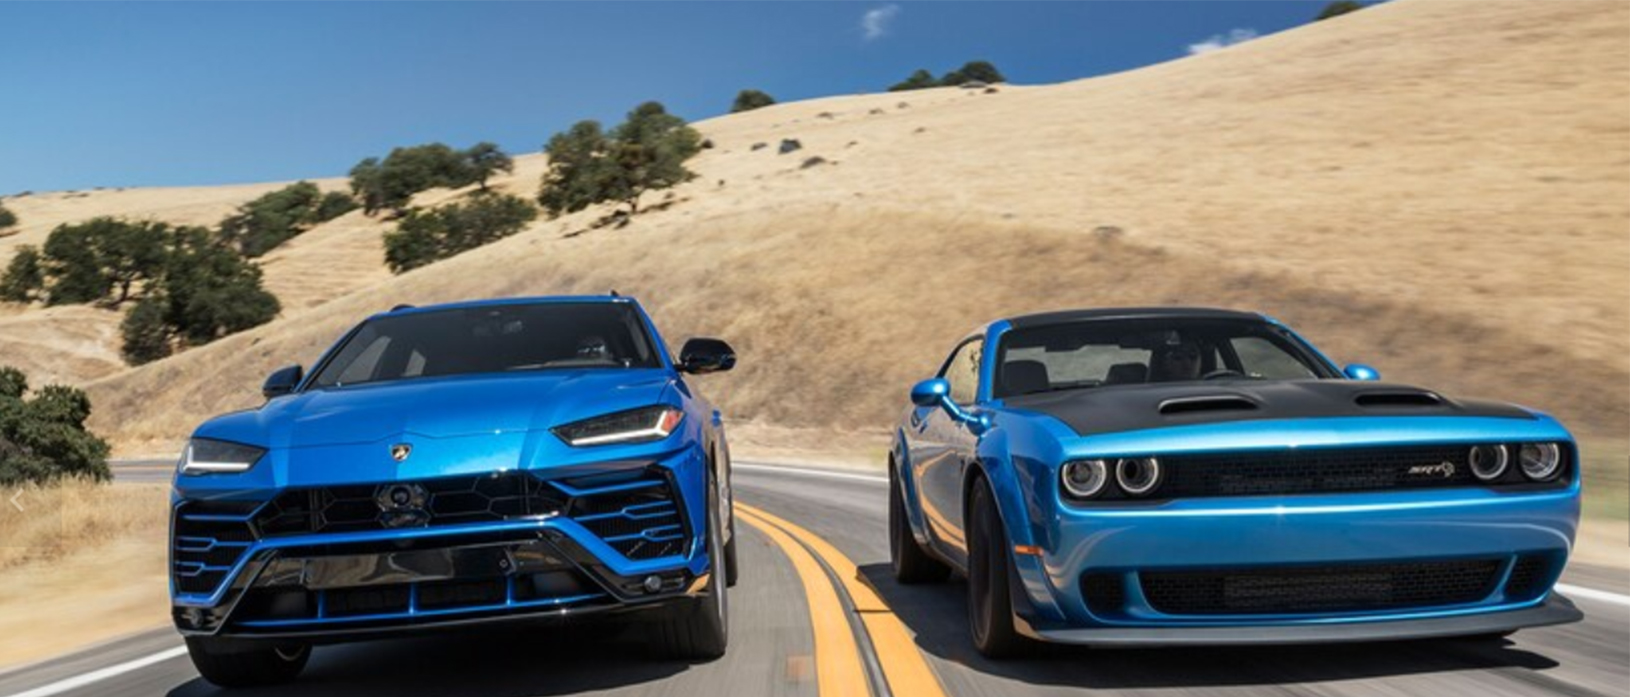 a Lamborghini Urus and a Dodge Challenger Hellcat Redeye driving side by side